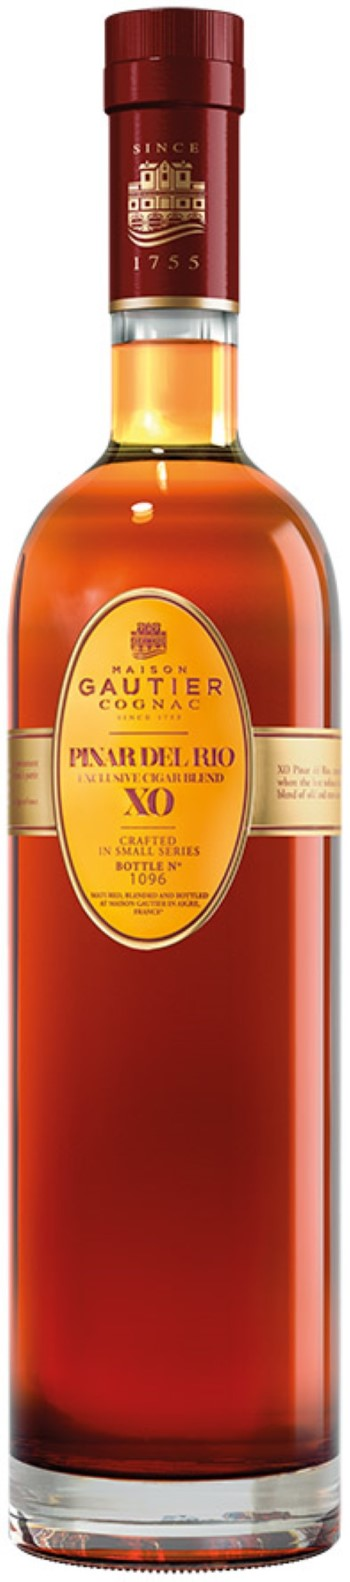 Best Superior Quality Cognac